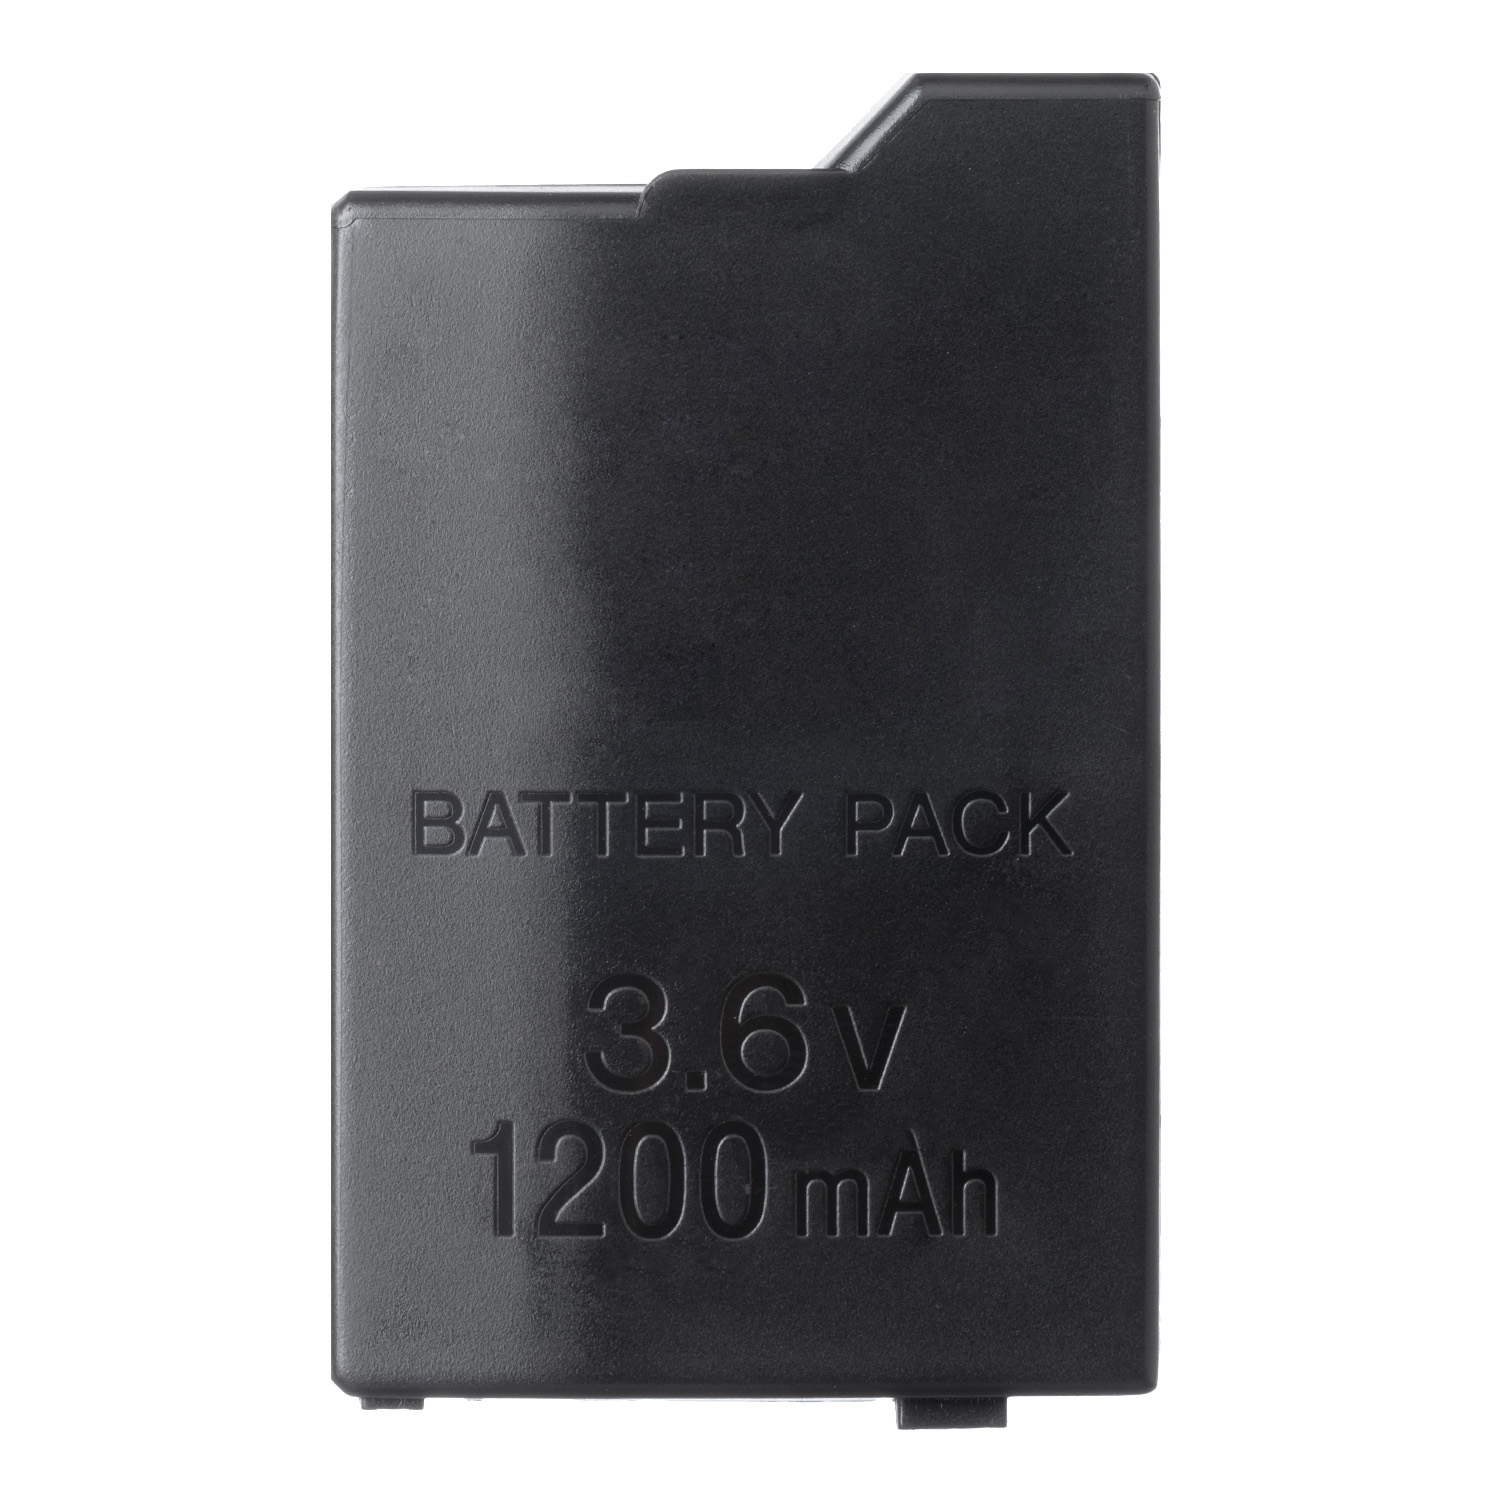 OSTENT 1200mAh 3 6V Lithium Ion Rechargeable Battery Pack Replacement for Sony PSP 2000 3000 PSP-S110 Console